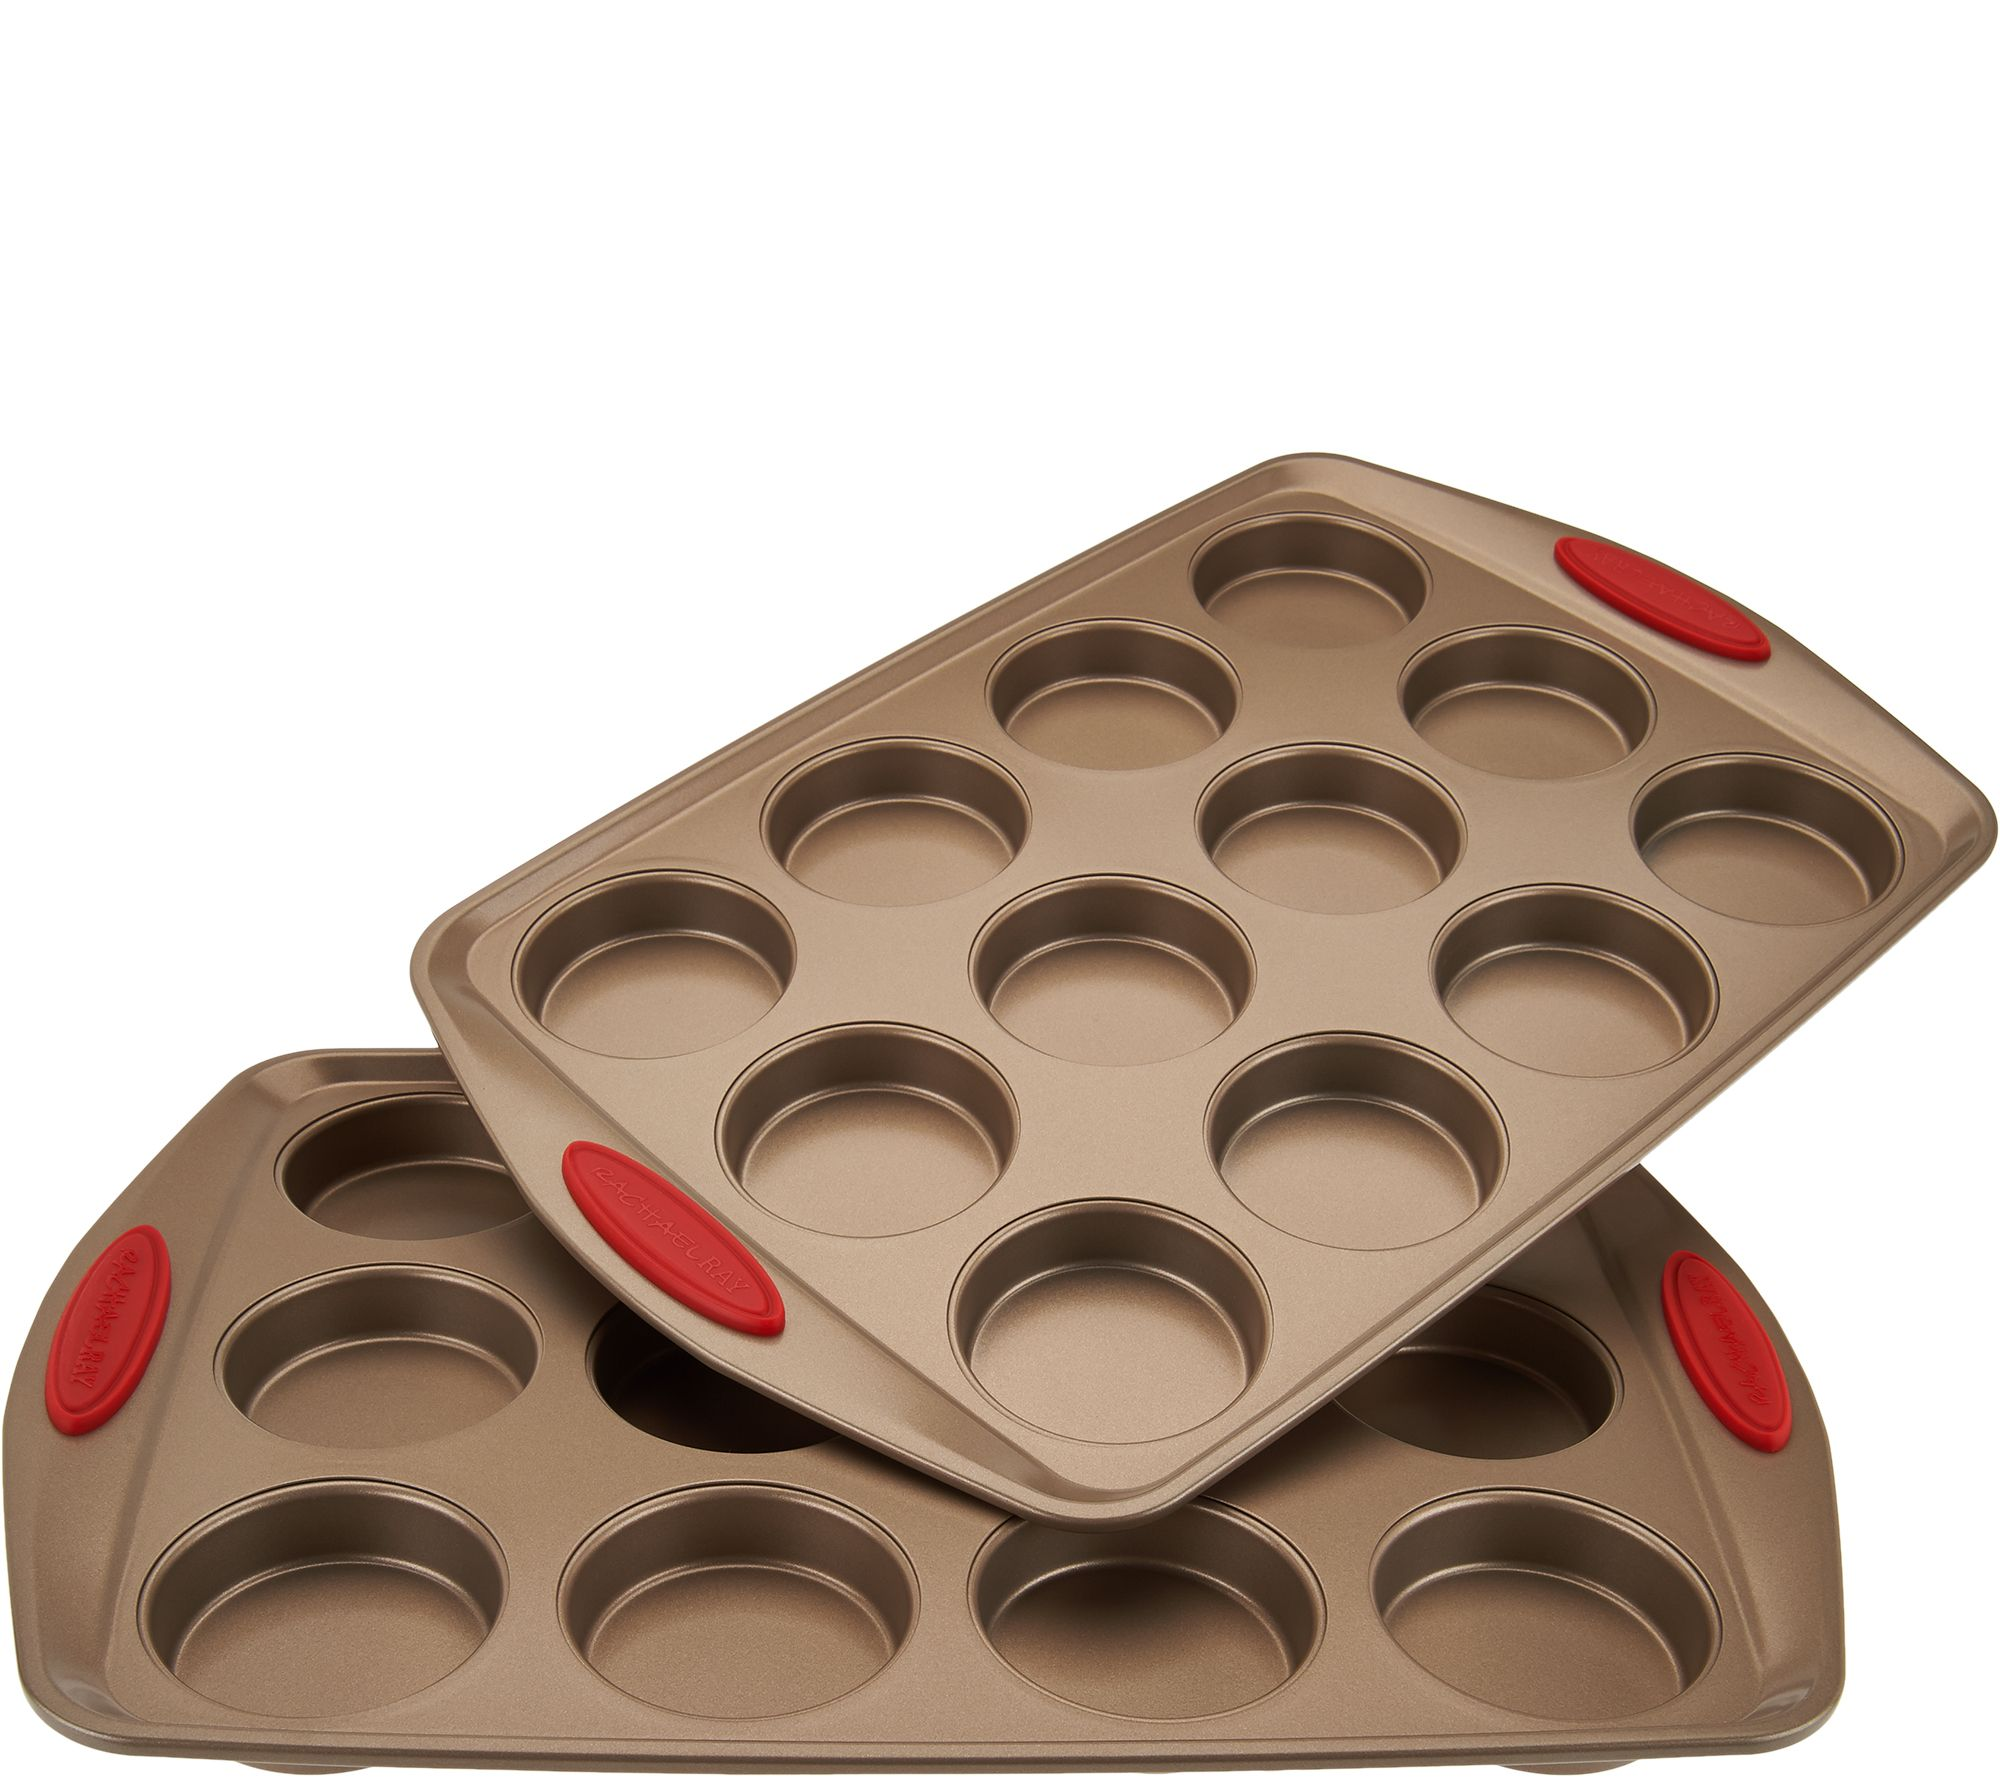 Rachael Ray 2 12 Mini Cake Pans With Silicone Handles